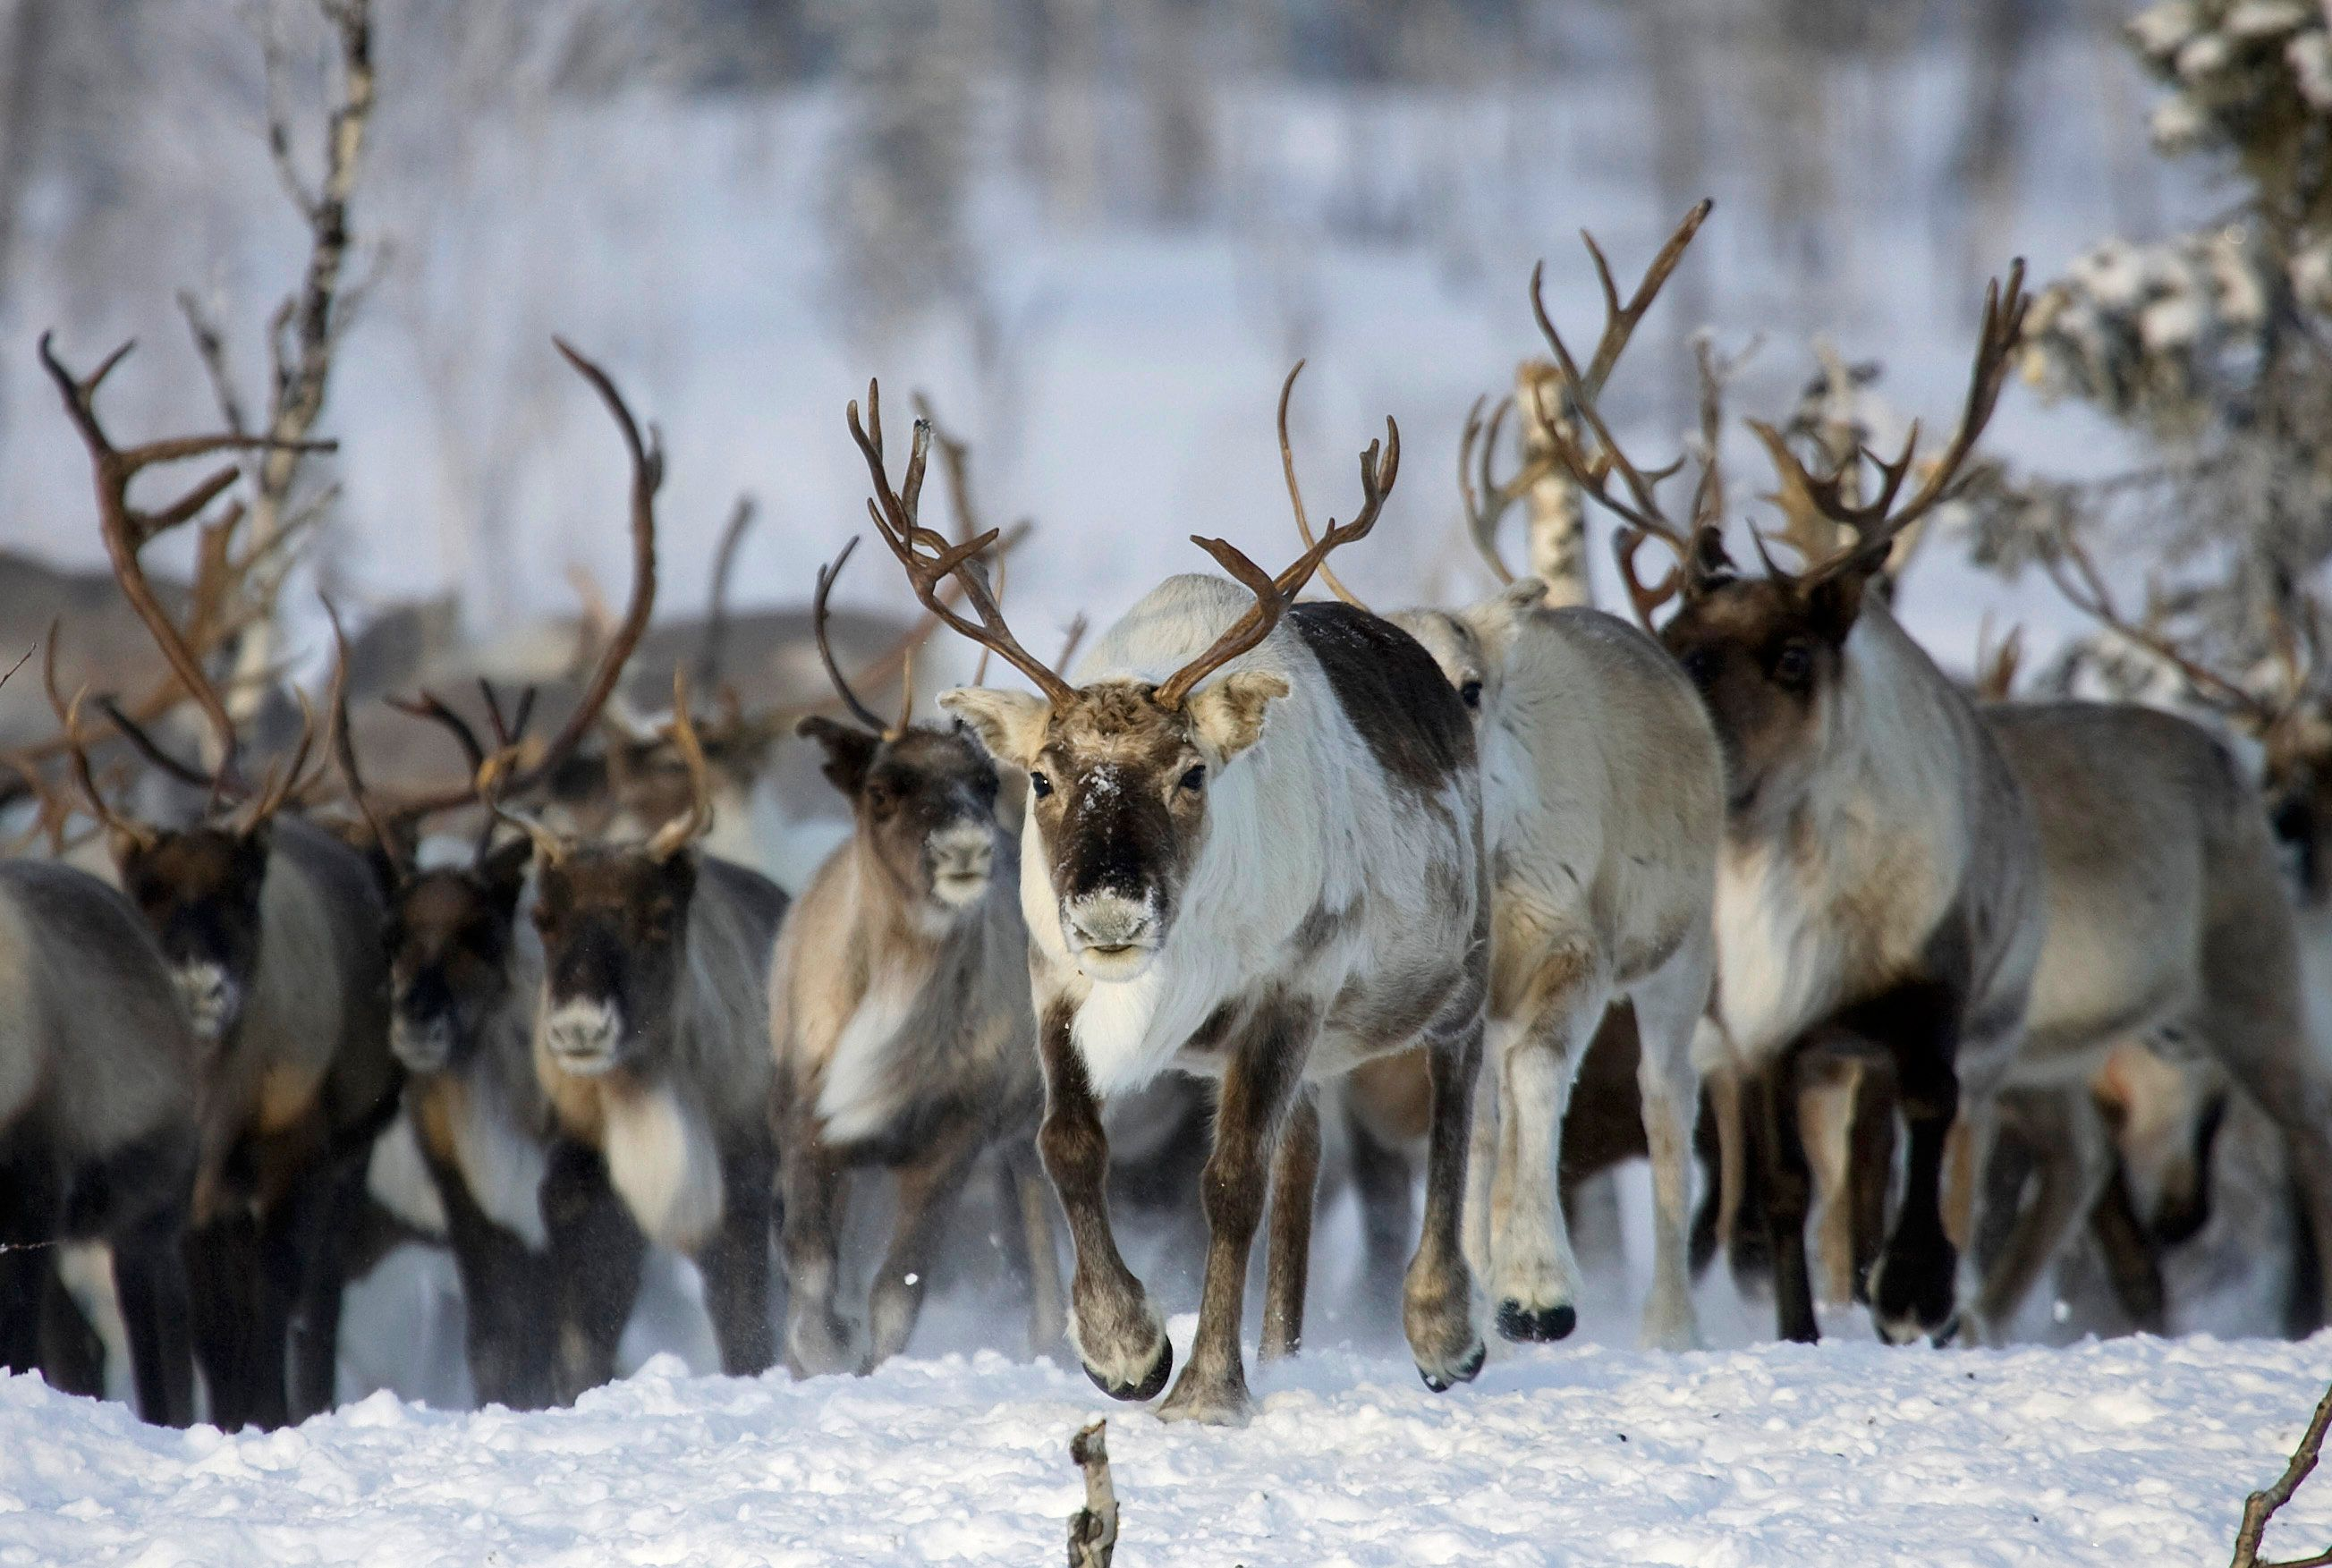 Reindeers graze near a Nenets settlement near the remote village of Gornokniazevsk on the Yamal peninsula, above the polar circle some 2000km (1242 miles) northeast of Moscow, February 27, 2008.  The Nenets are indigenous people in Russia's arctic region north of the Urals. REUTERS/Vasily Fedosenko (RUSSIA)